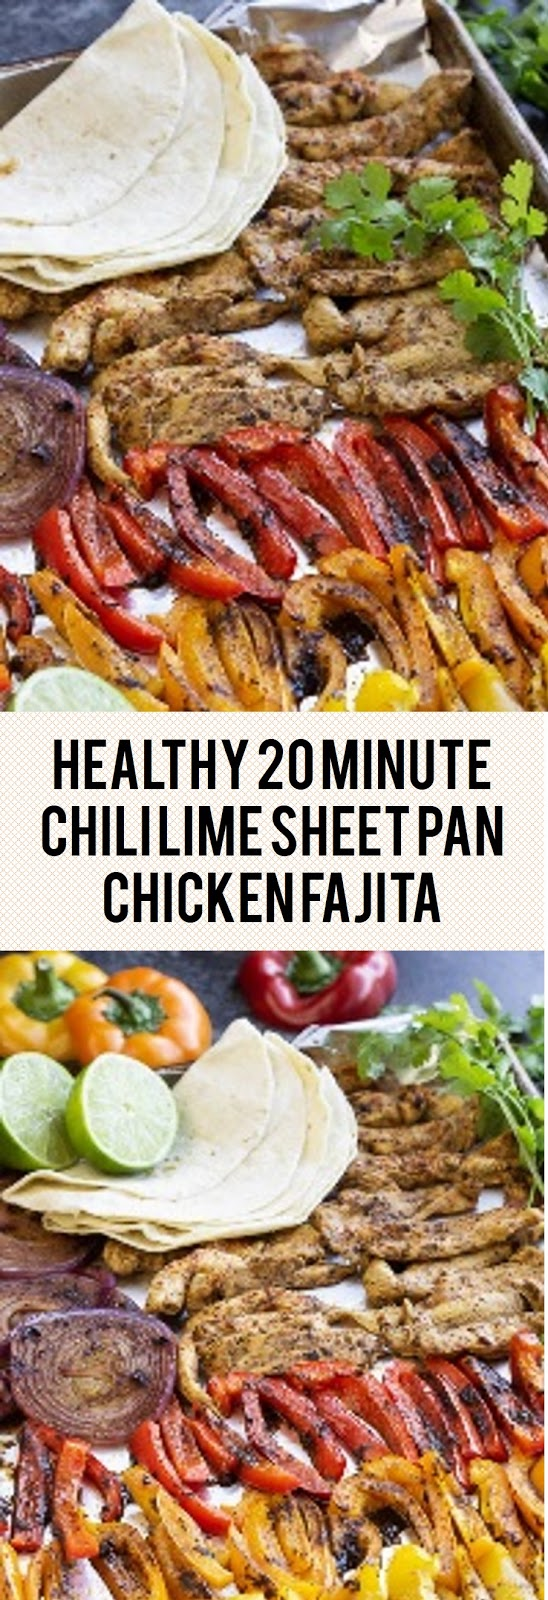 Healthy 20 Minute Chili Lime Sheet Pan Chicken Fajita